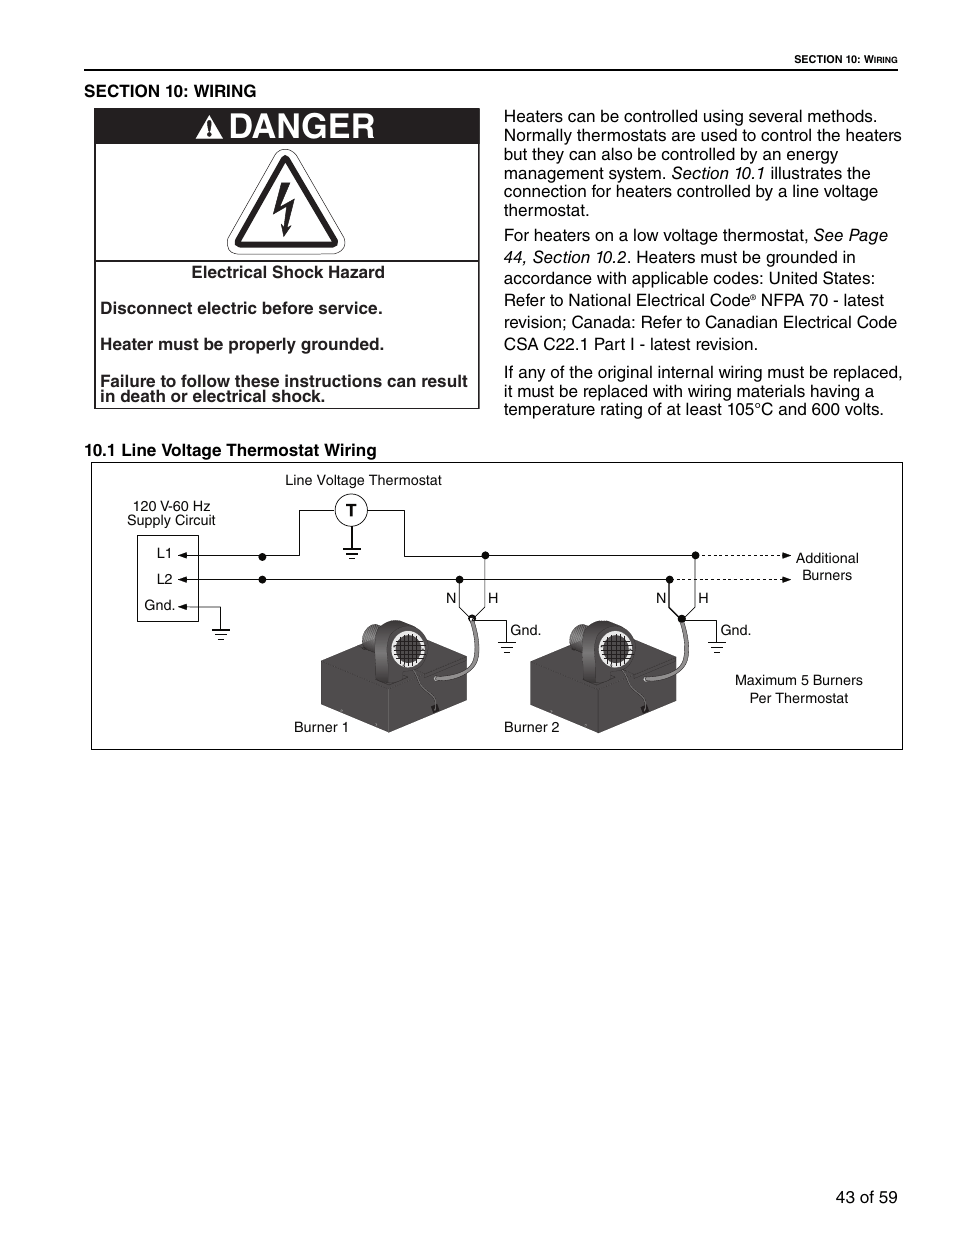 hight resolution of section 10 wiring 1 line voltage thermostat wiring danger roberts gorden gordonray bh bh 40 user manual page 49 70